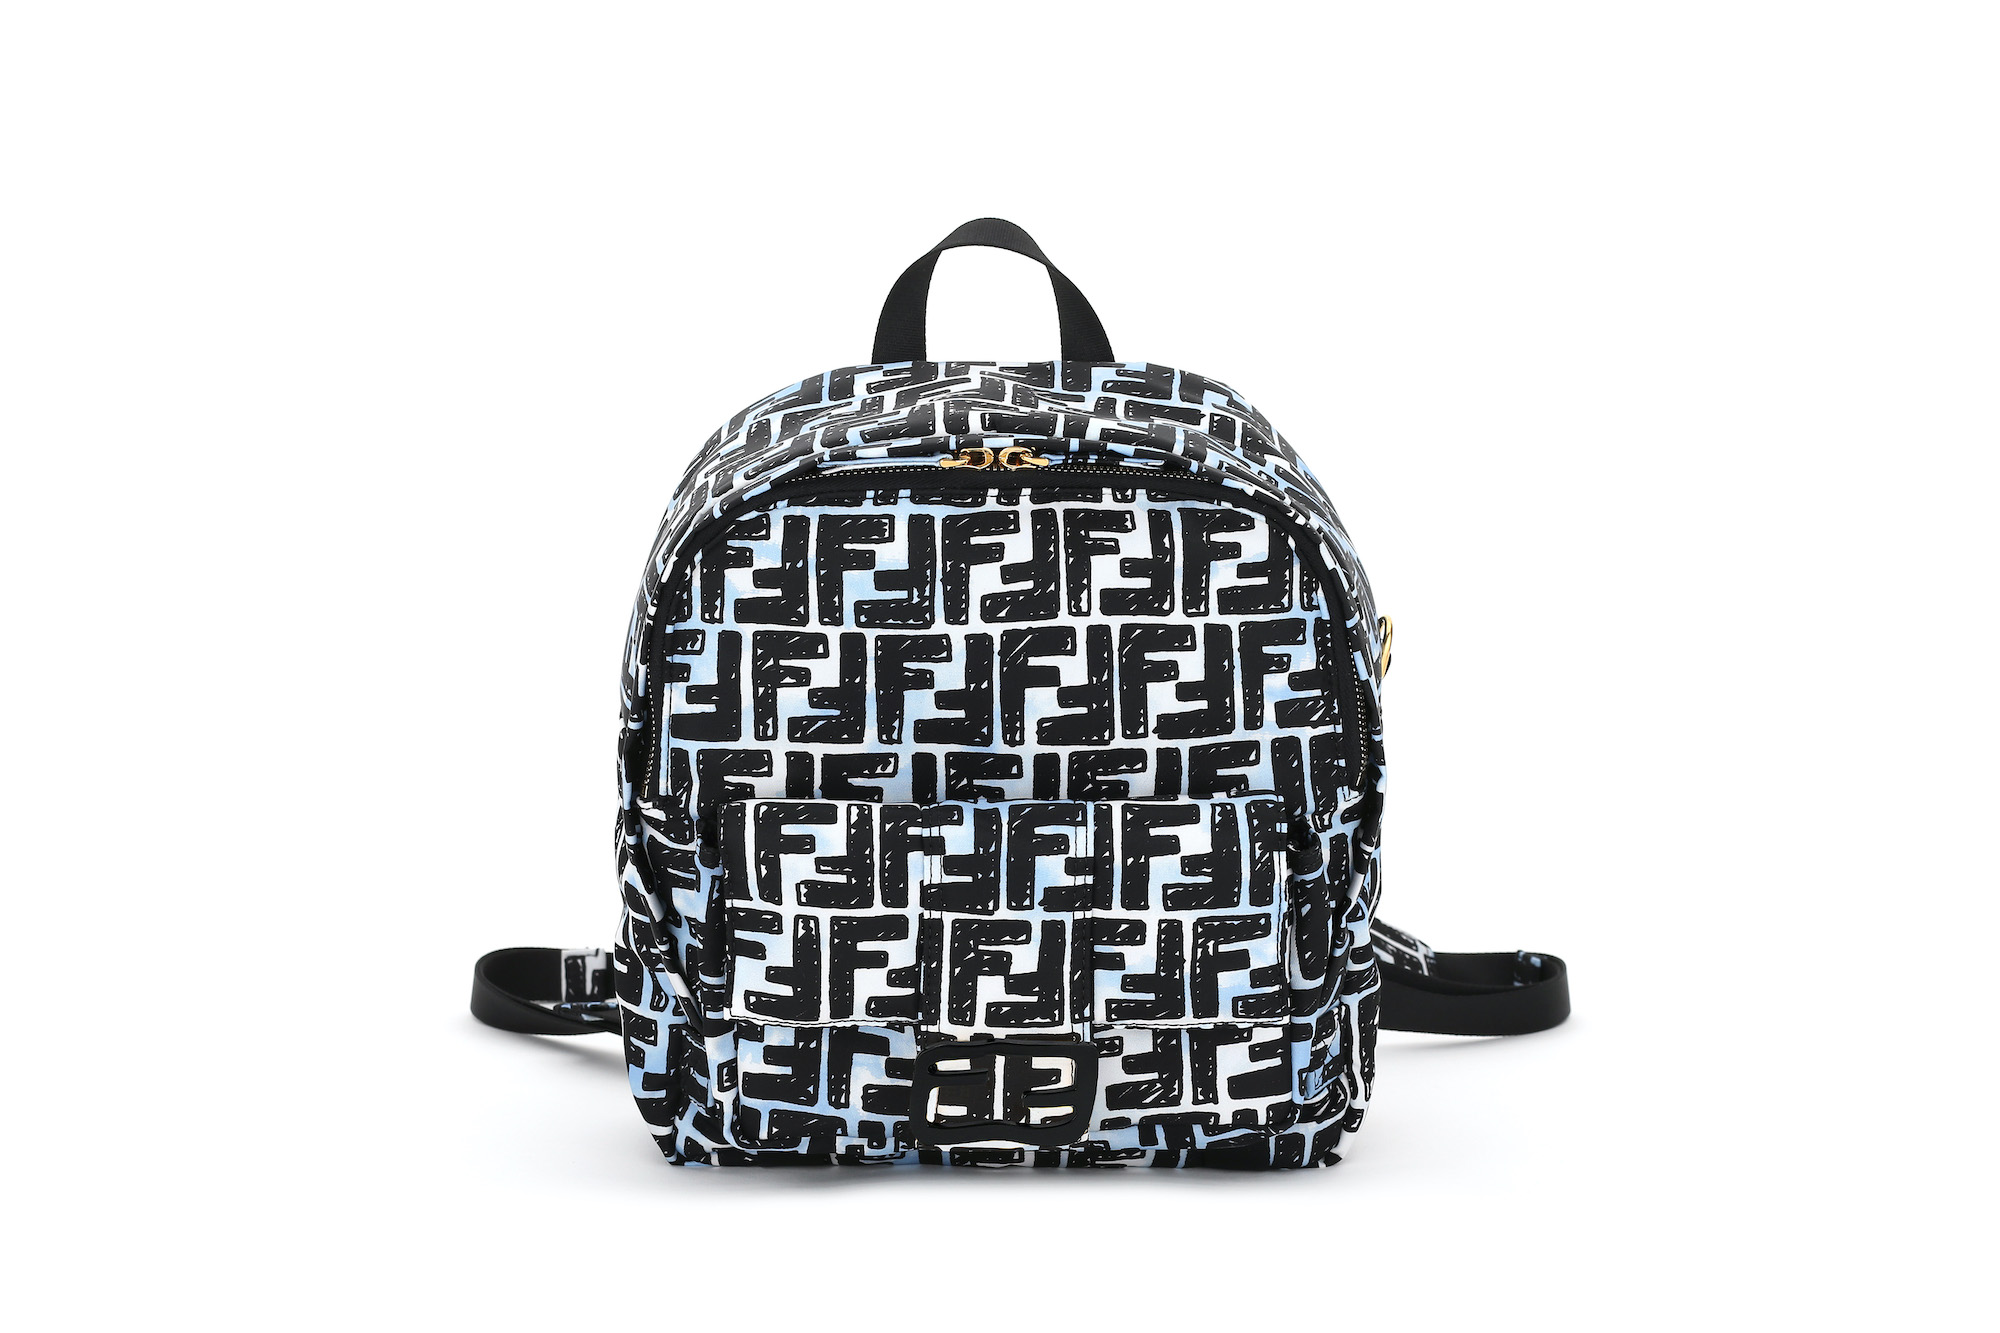 Fendi Pre-fall 2020 backpack